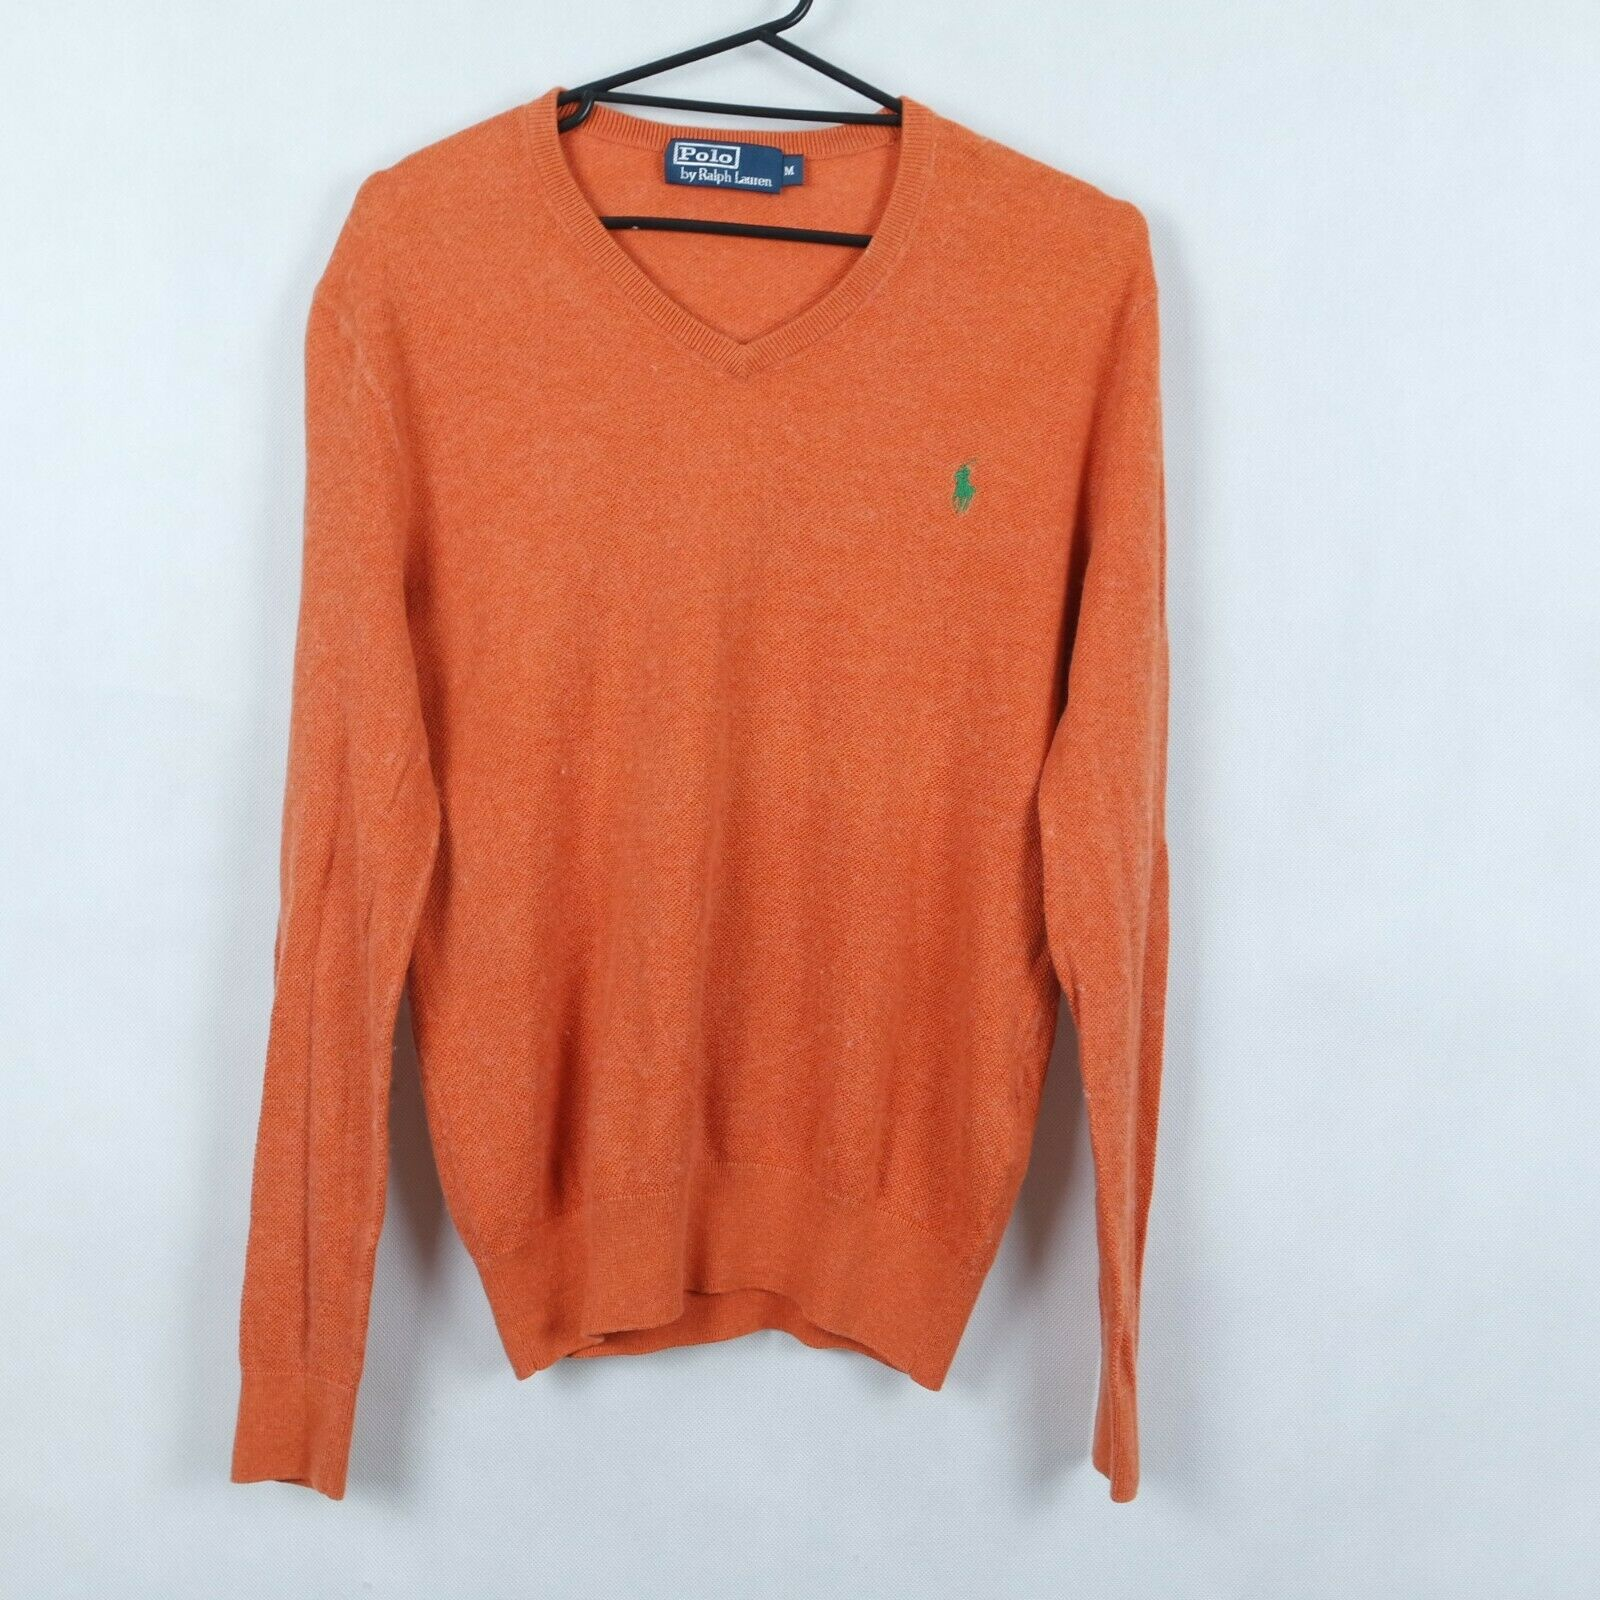 RALPH LAUREN Mens Orange Cashmere V Neck Sweater Jumper Größe Medium, M